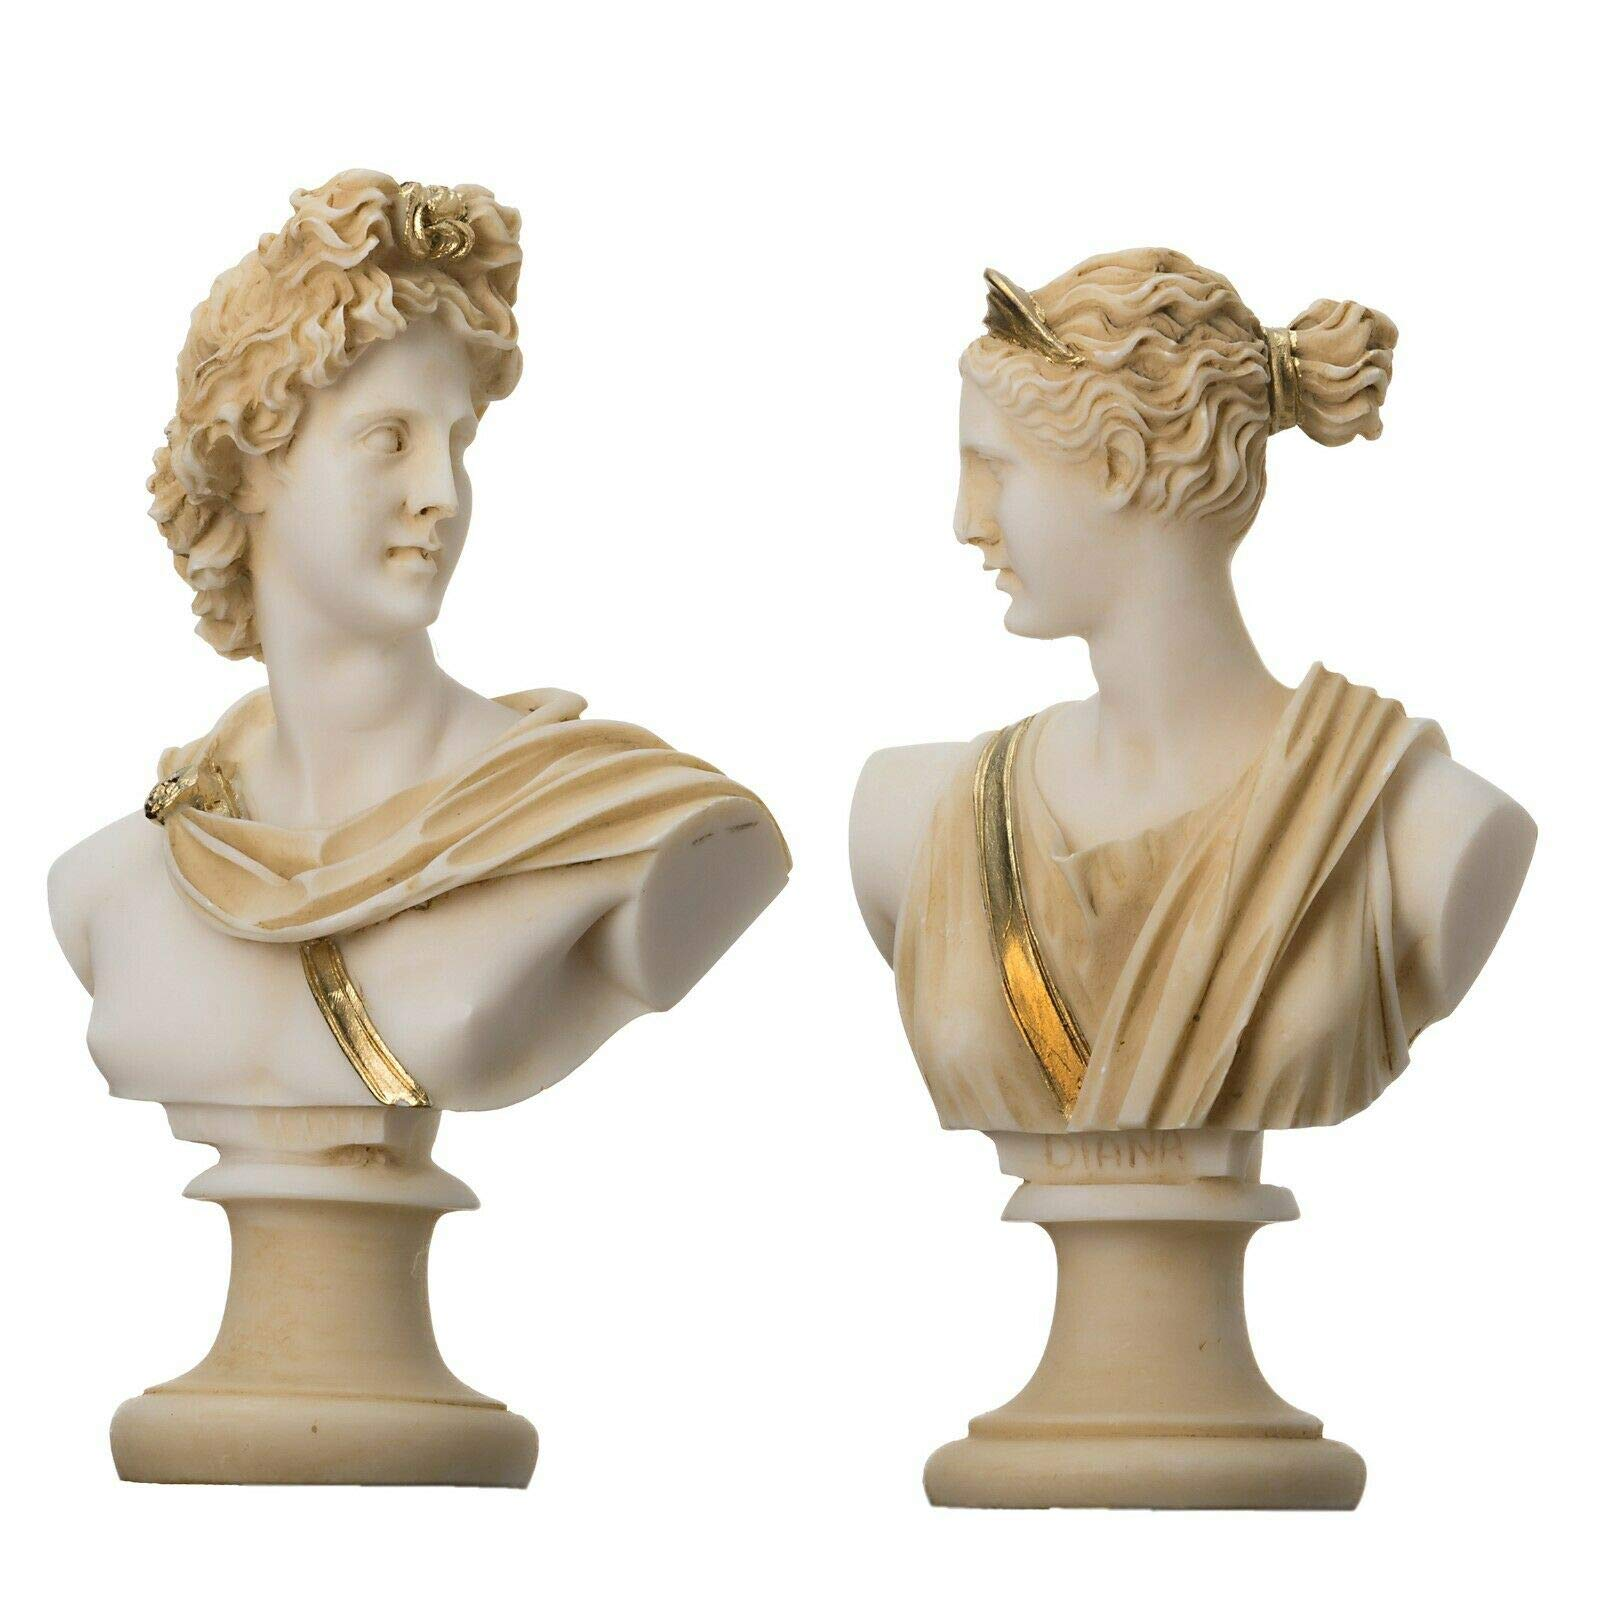 Artemis Diana and Apollo Bust Greek Statues Figurine Gods Gold Tone 5.9'' by BeautifulGreekStatues